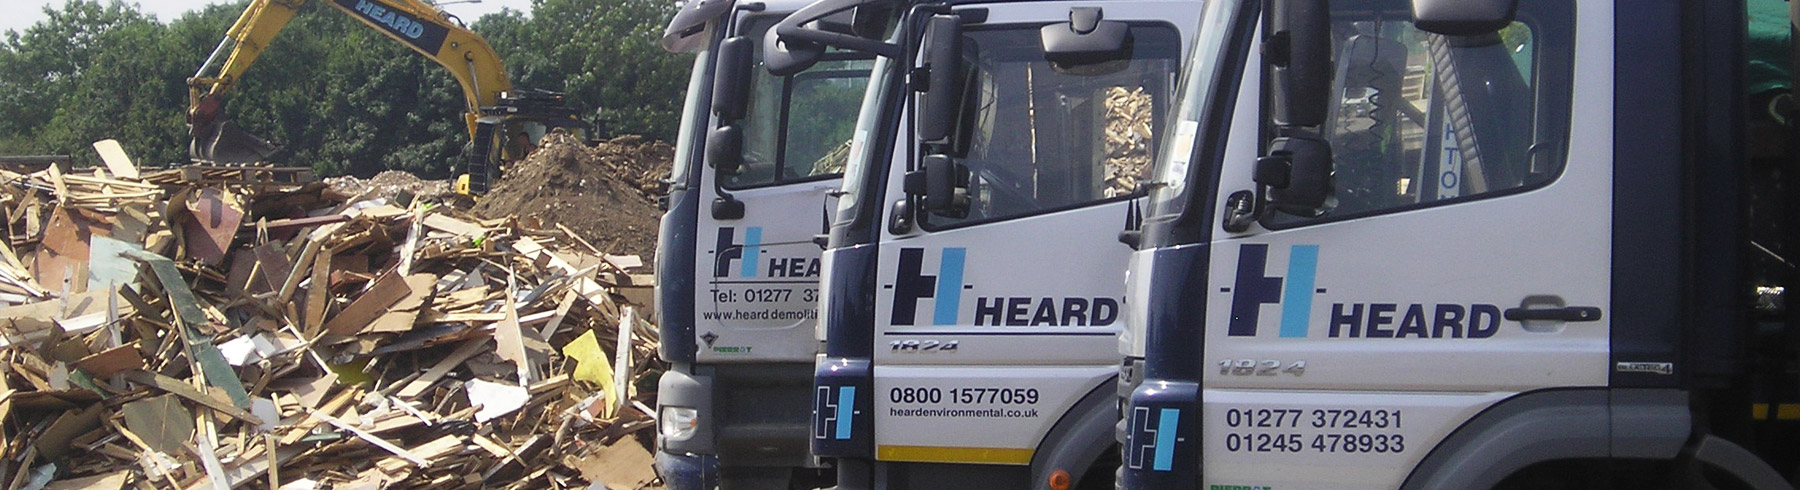 Skip Hire in Essex